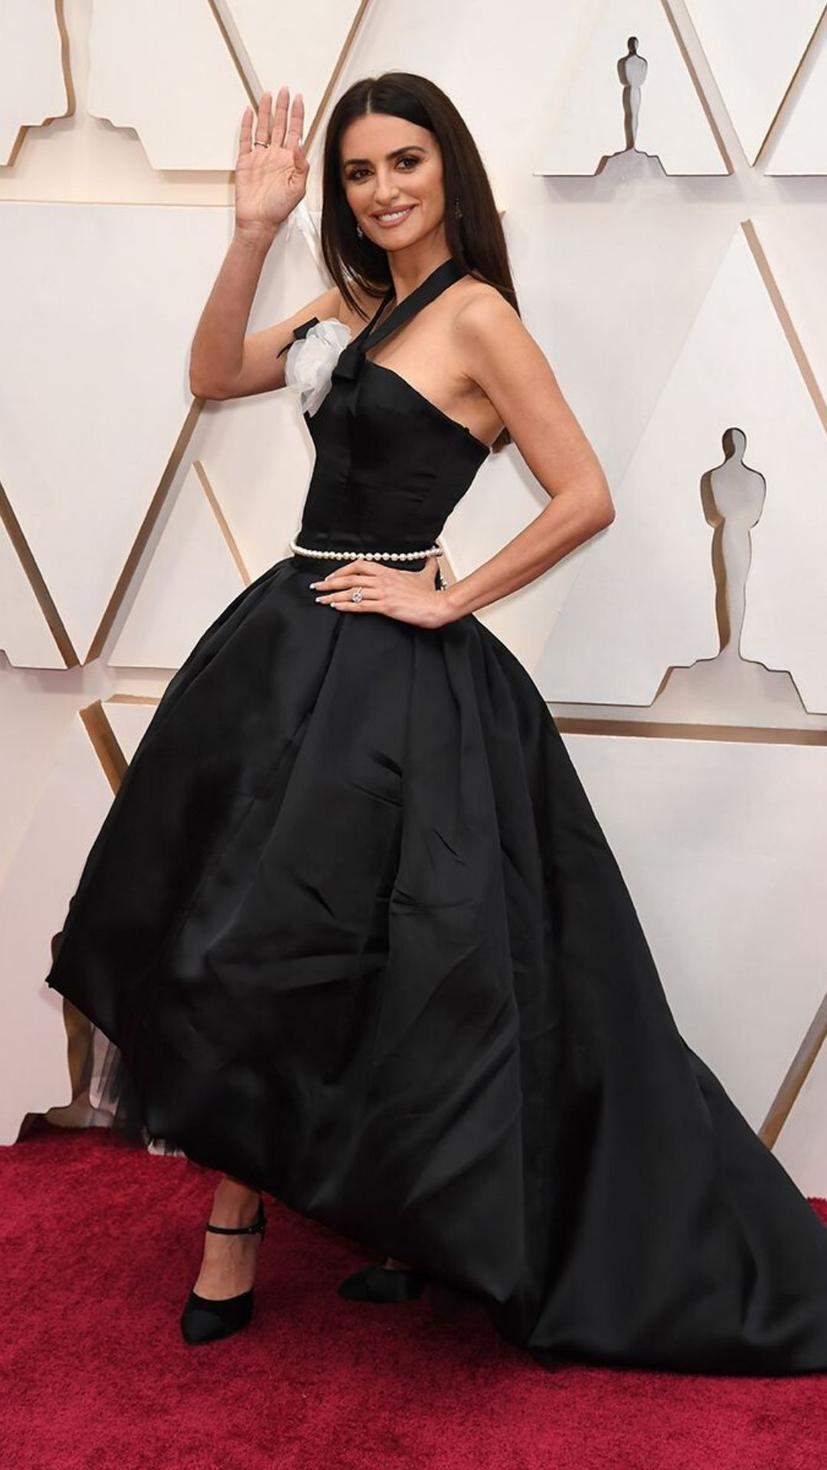 Penelope Cruz wears a gown from Chanel and jewellery from Swarovski